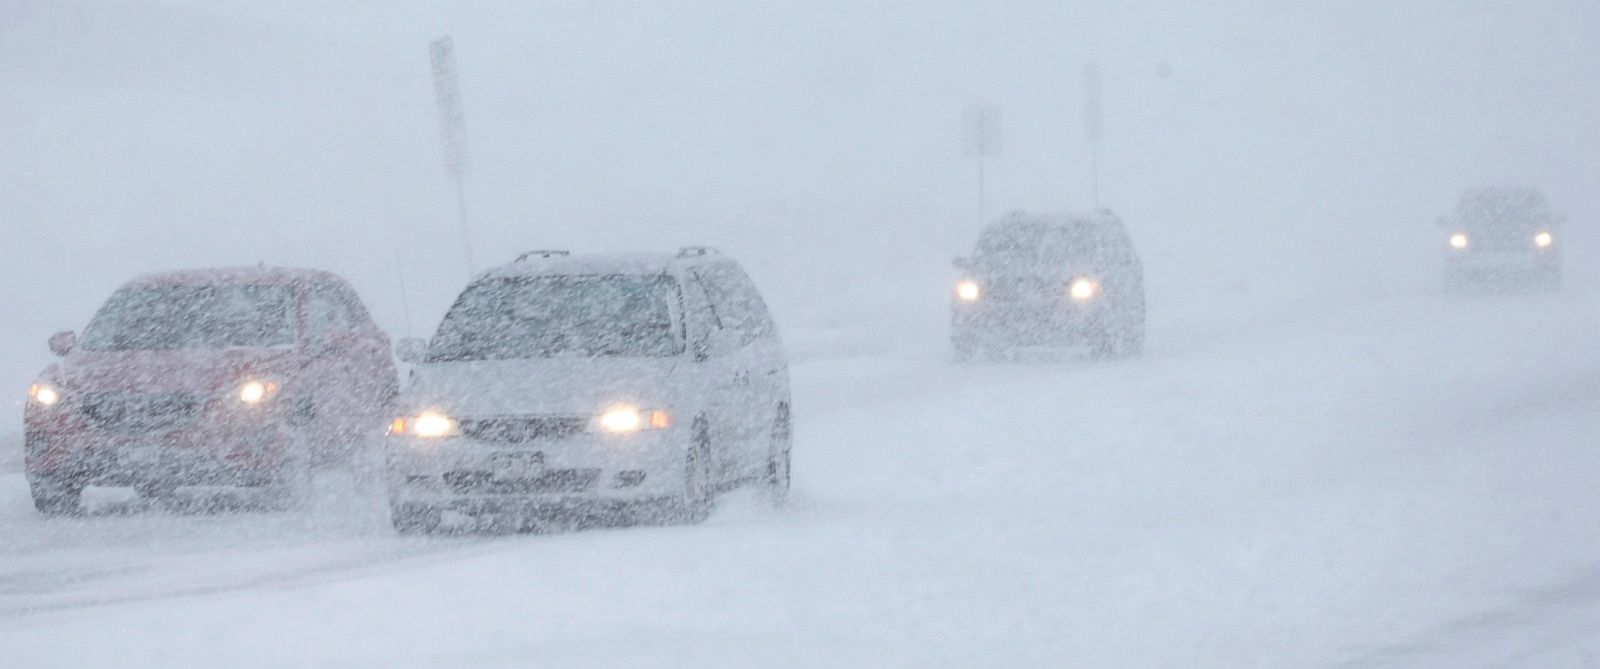 PHOTO: Motorists struggle to guide their vehicles down Dry Creek Road in Centennial, Colo., as a snow storm sweeps over Colorados Front Rangy communities late Saturday, Feb. 21, 2015.